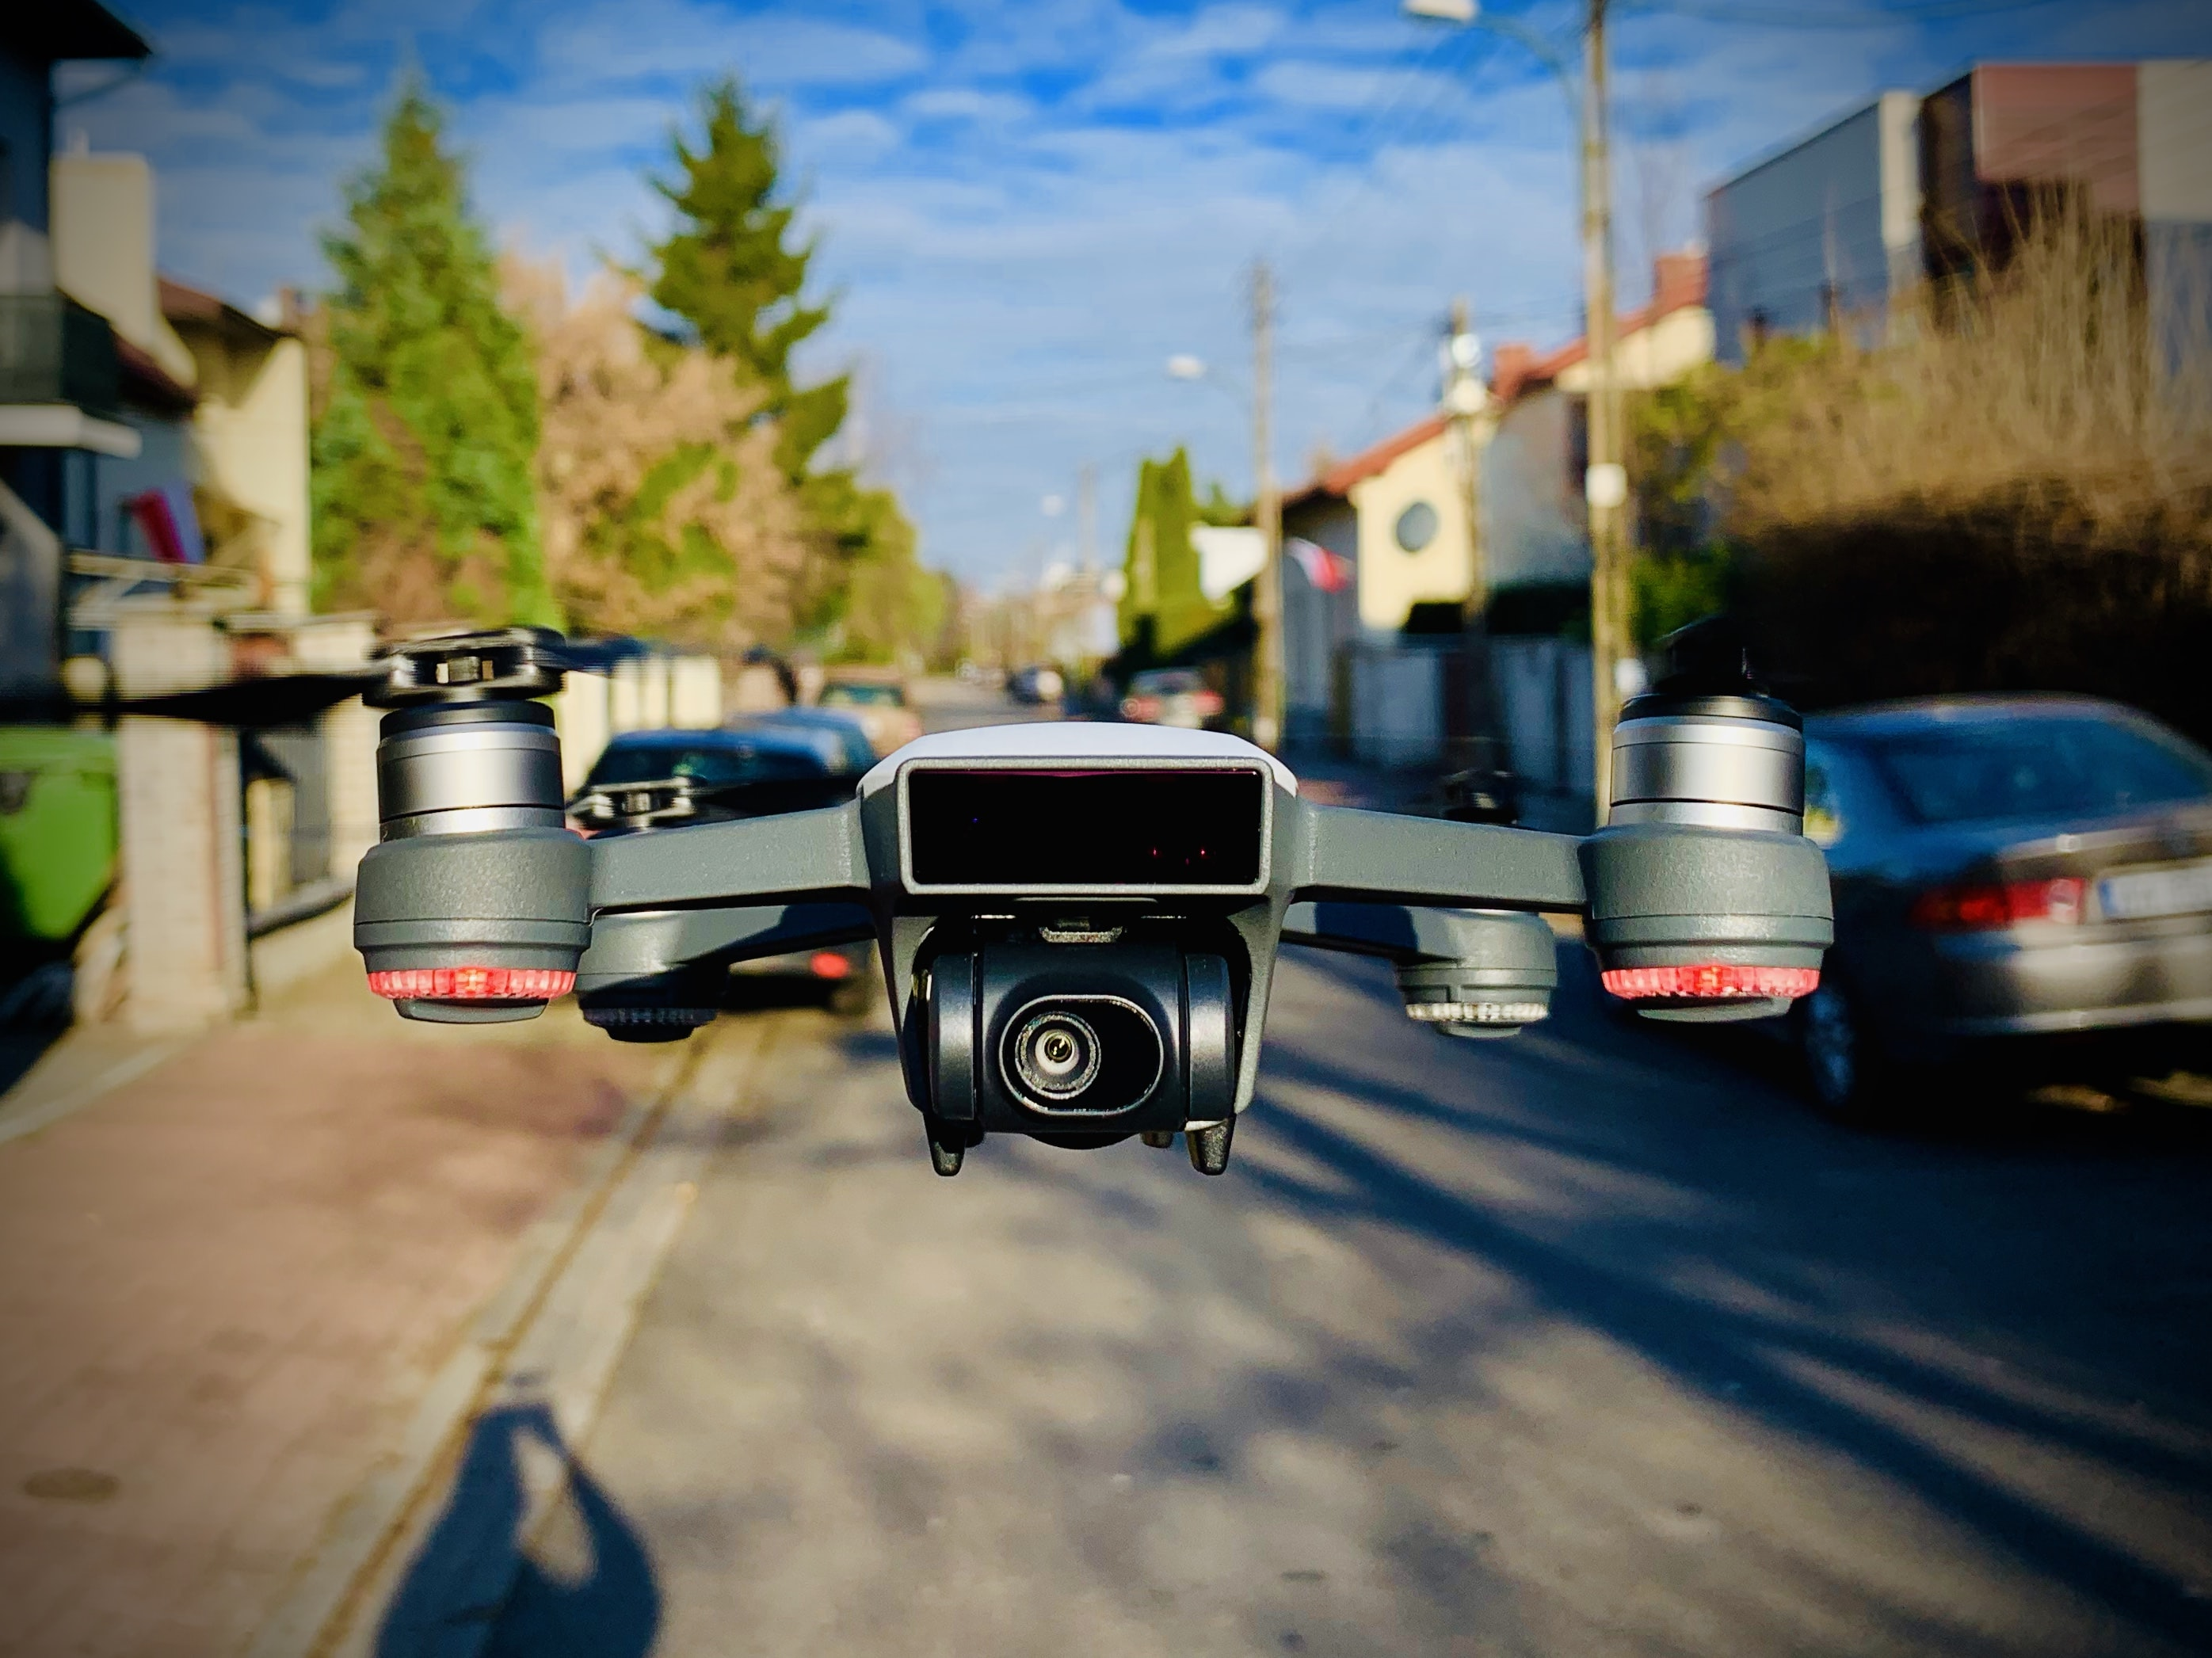 gray quadcopter drone during daytime